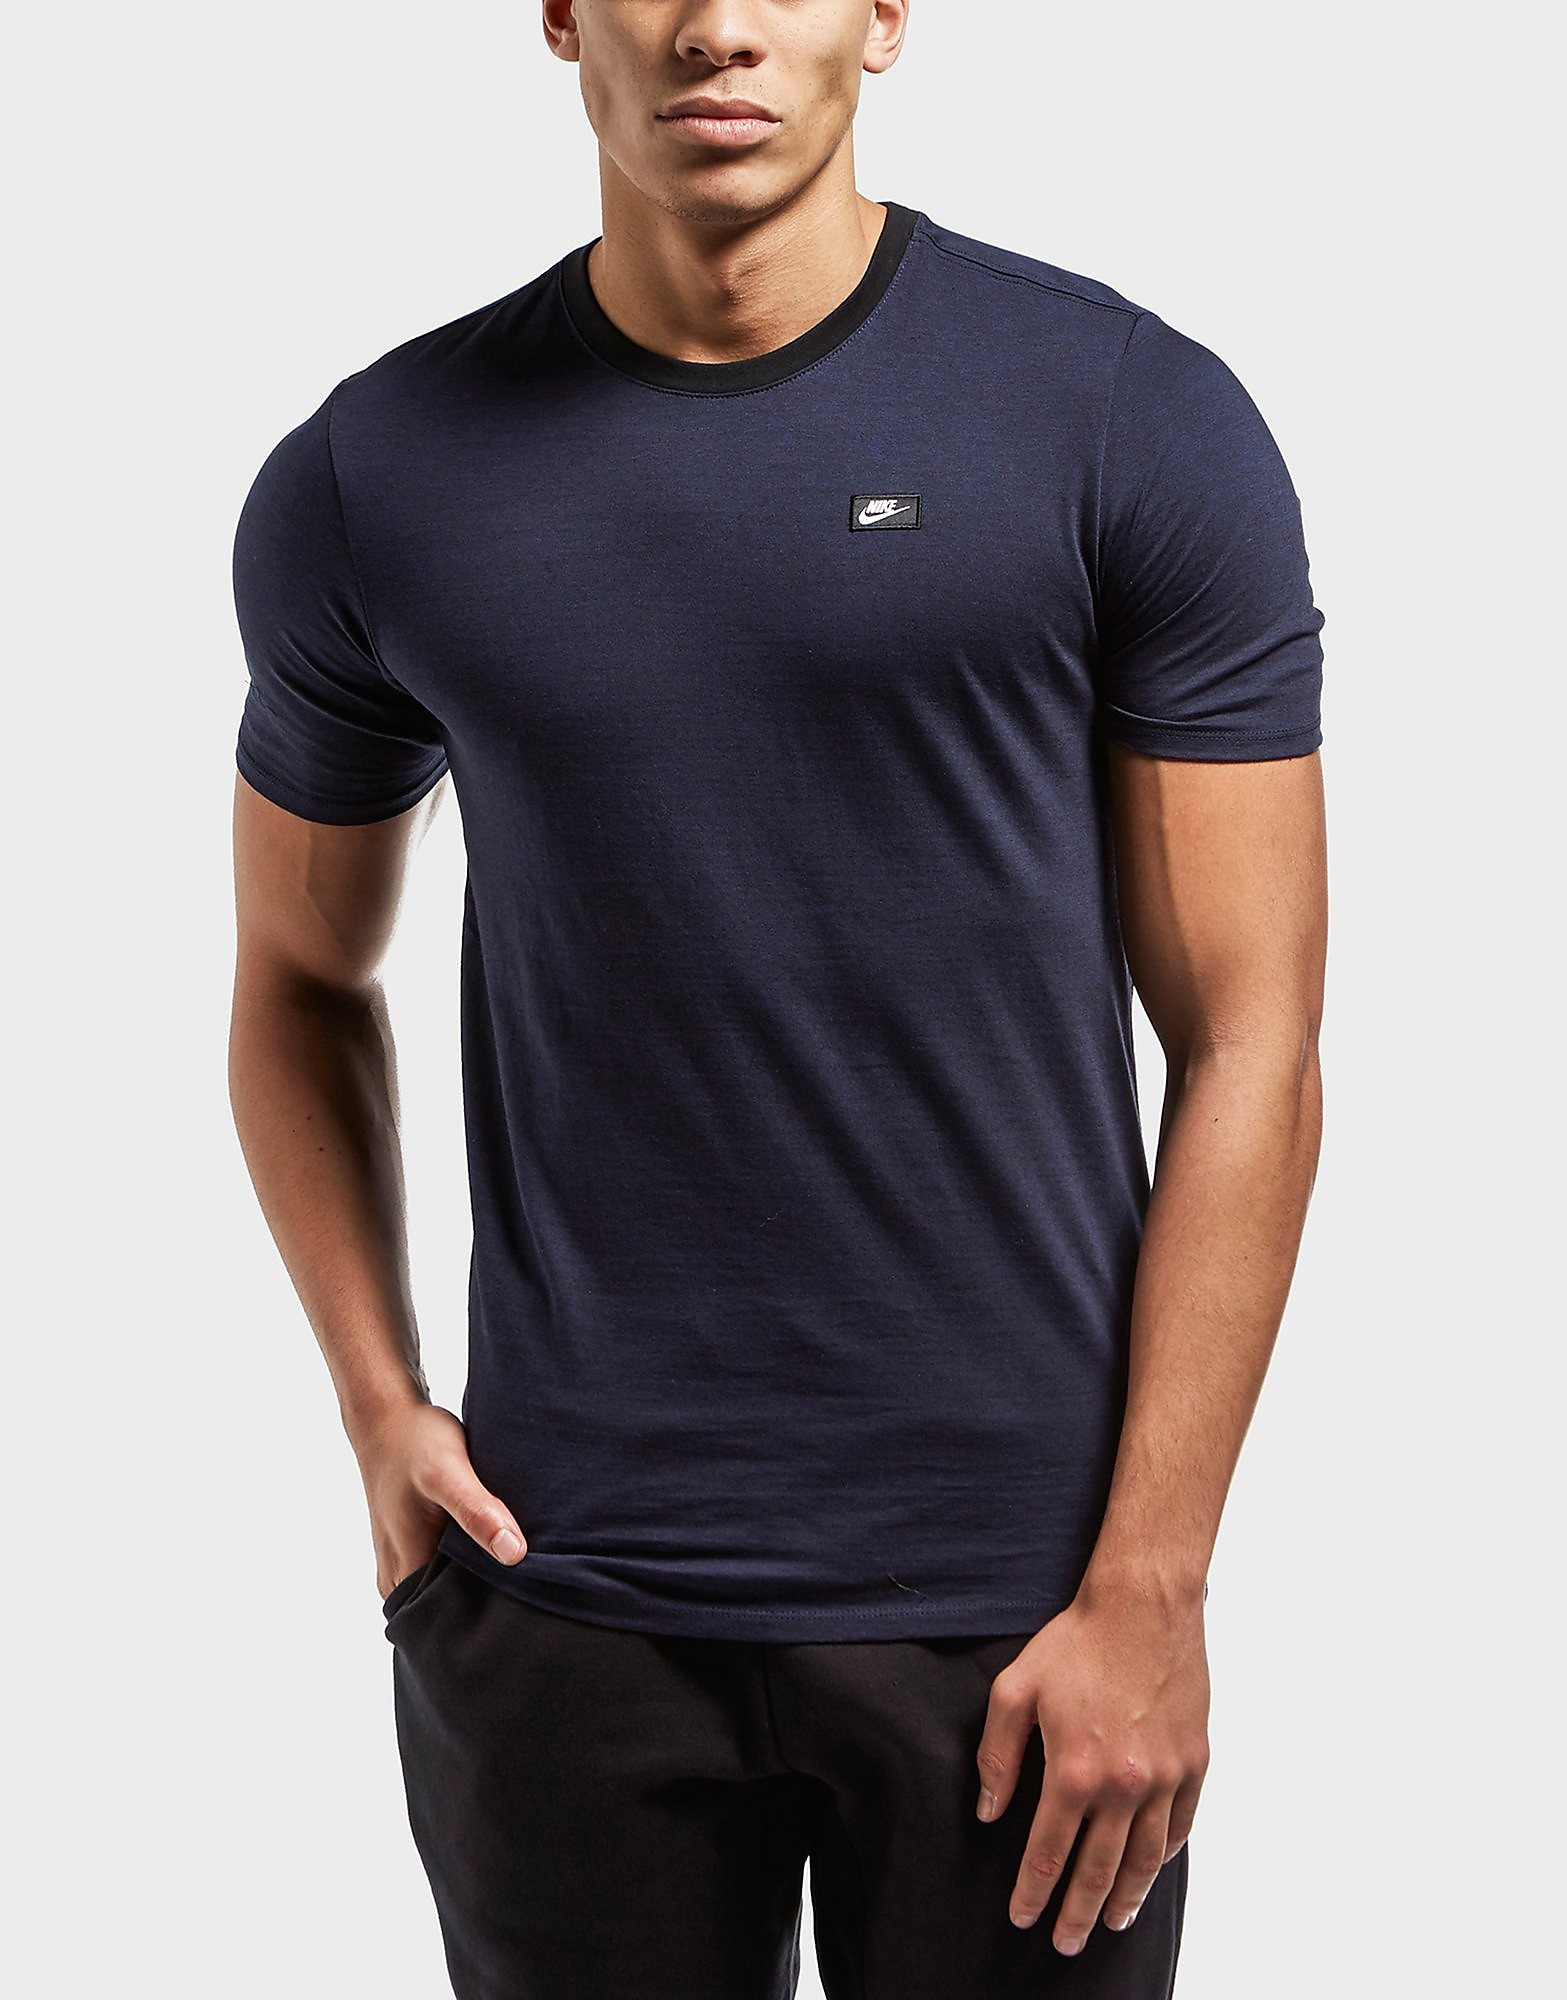 Nike Box Short Sleeve T-Shirt